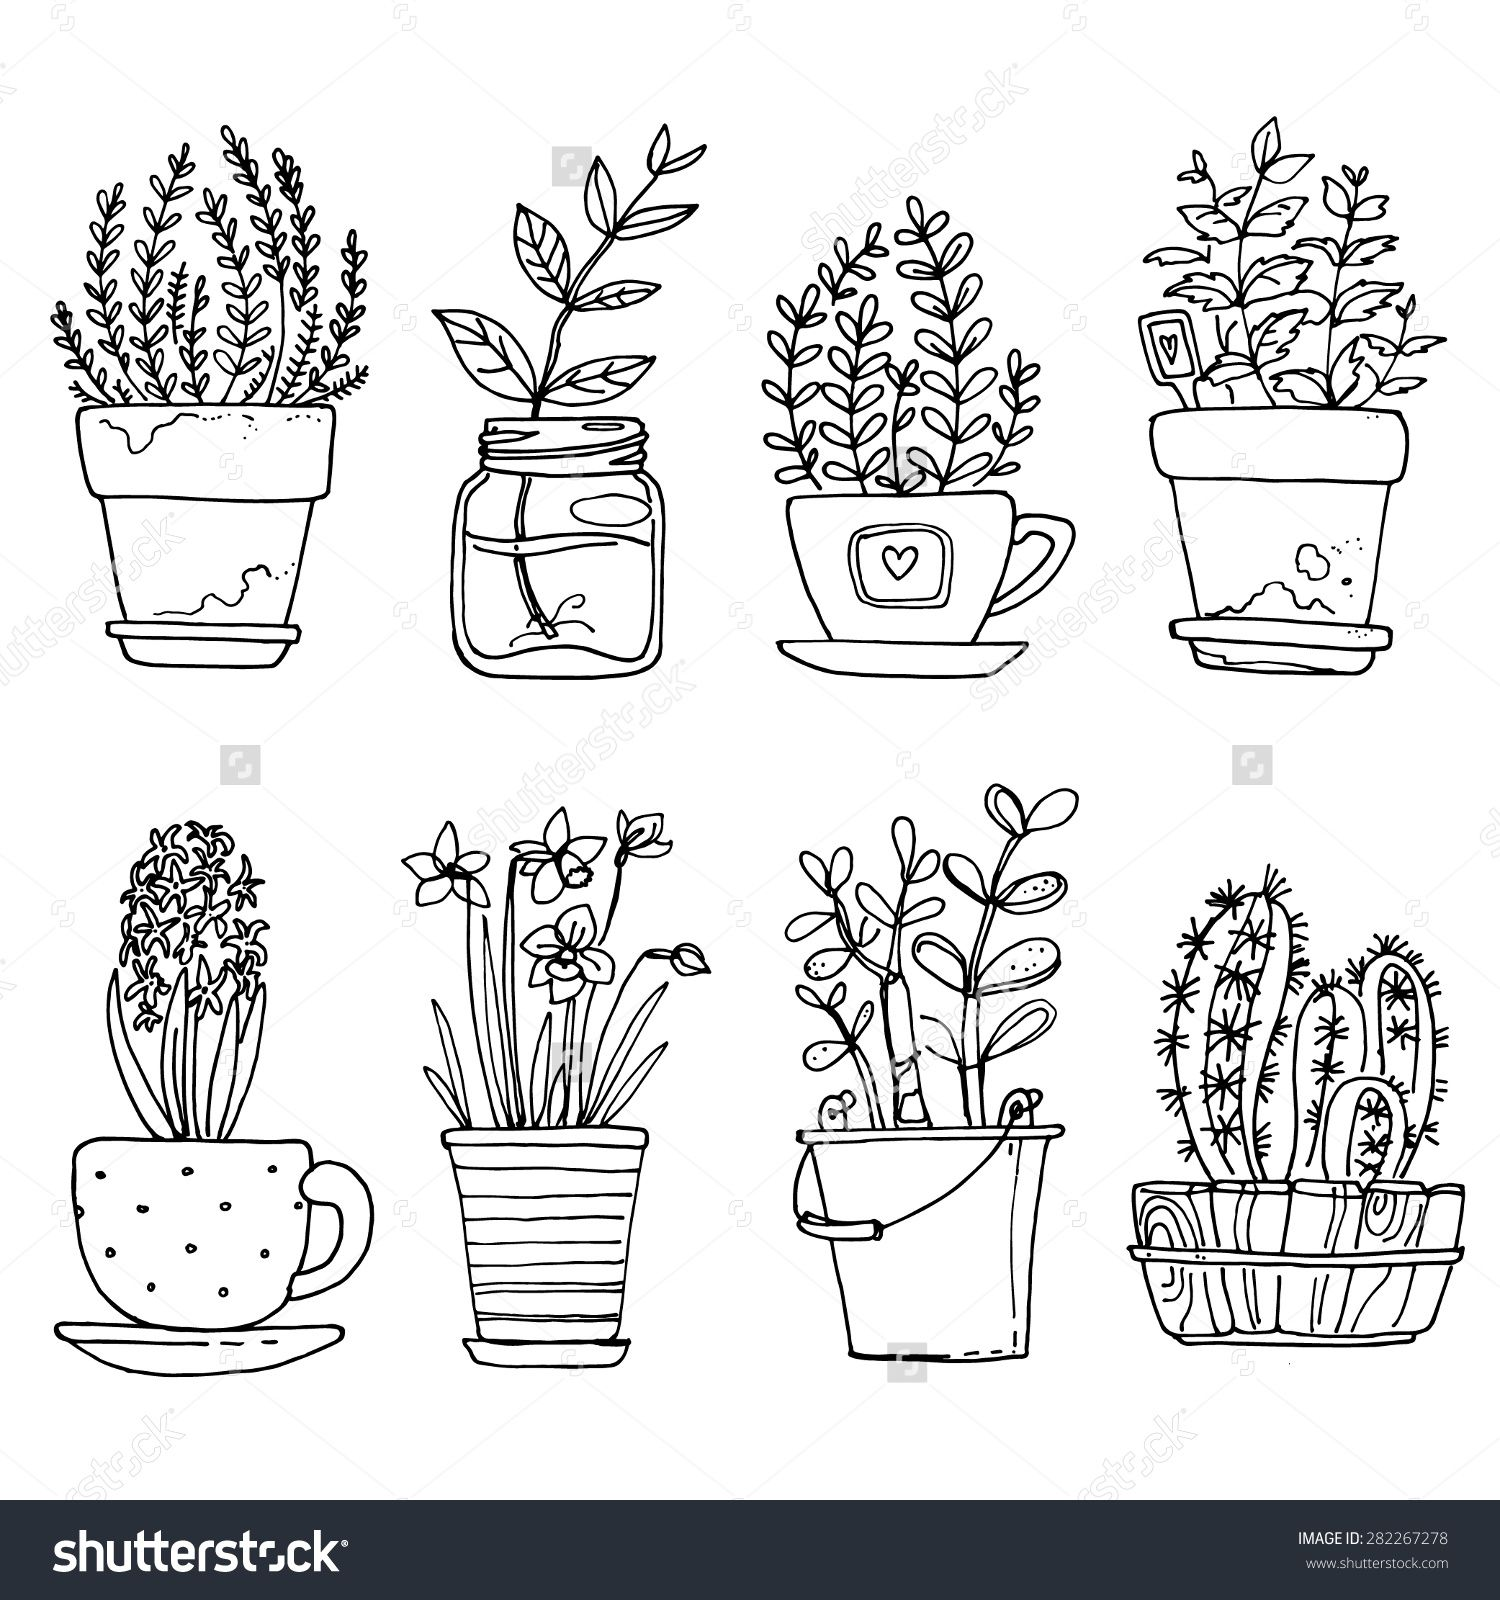 Flowers In Pots Painted Black Line On A White Background Vector Drawing Lines 282267278 Shutterstock Plant Doodle Doodle Drawings Plant Drawing